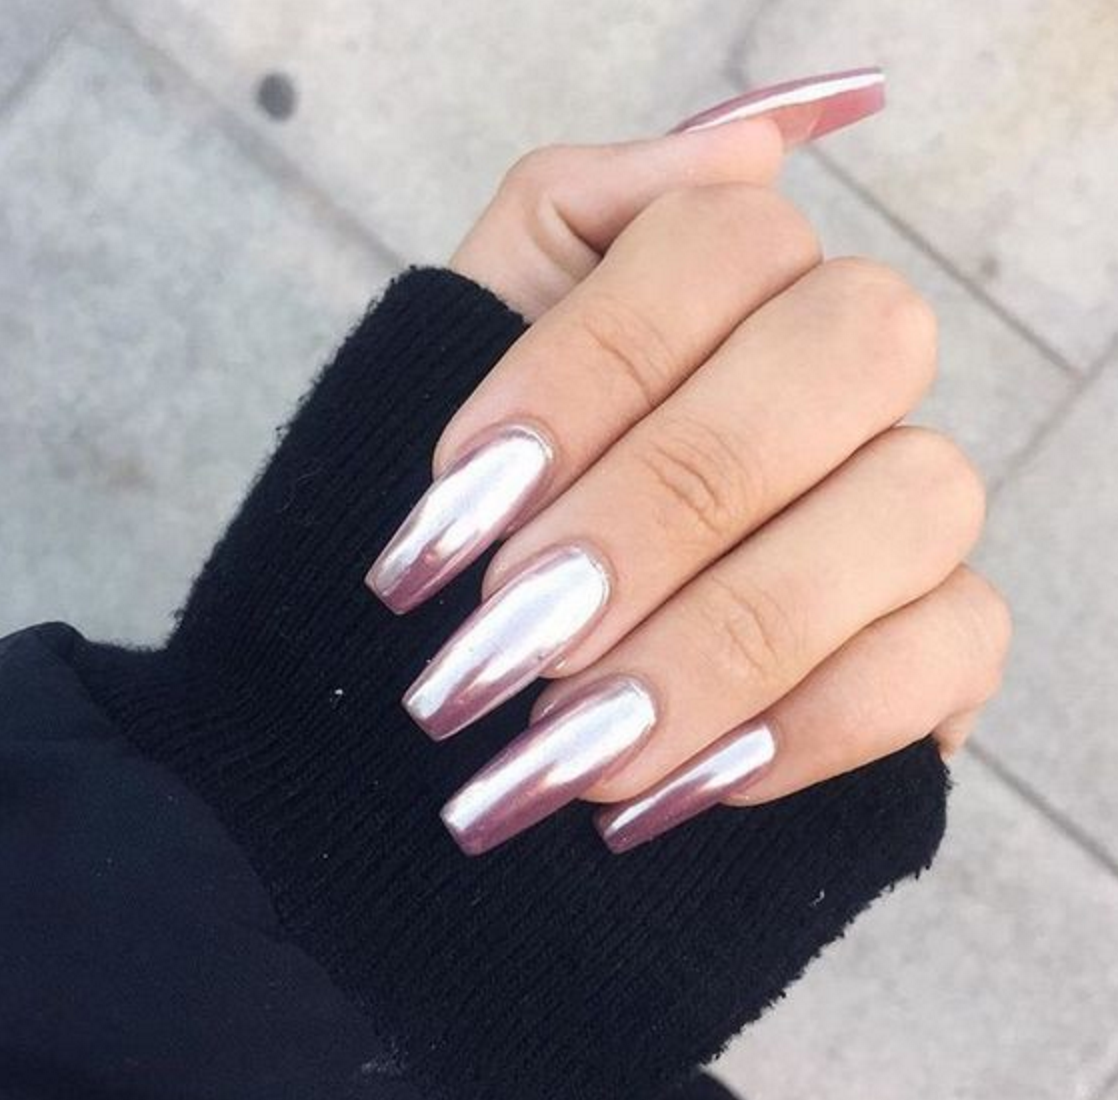 Nail Trends To Look Out For In 2017 | EGO